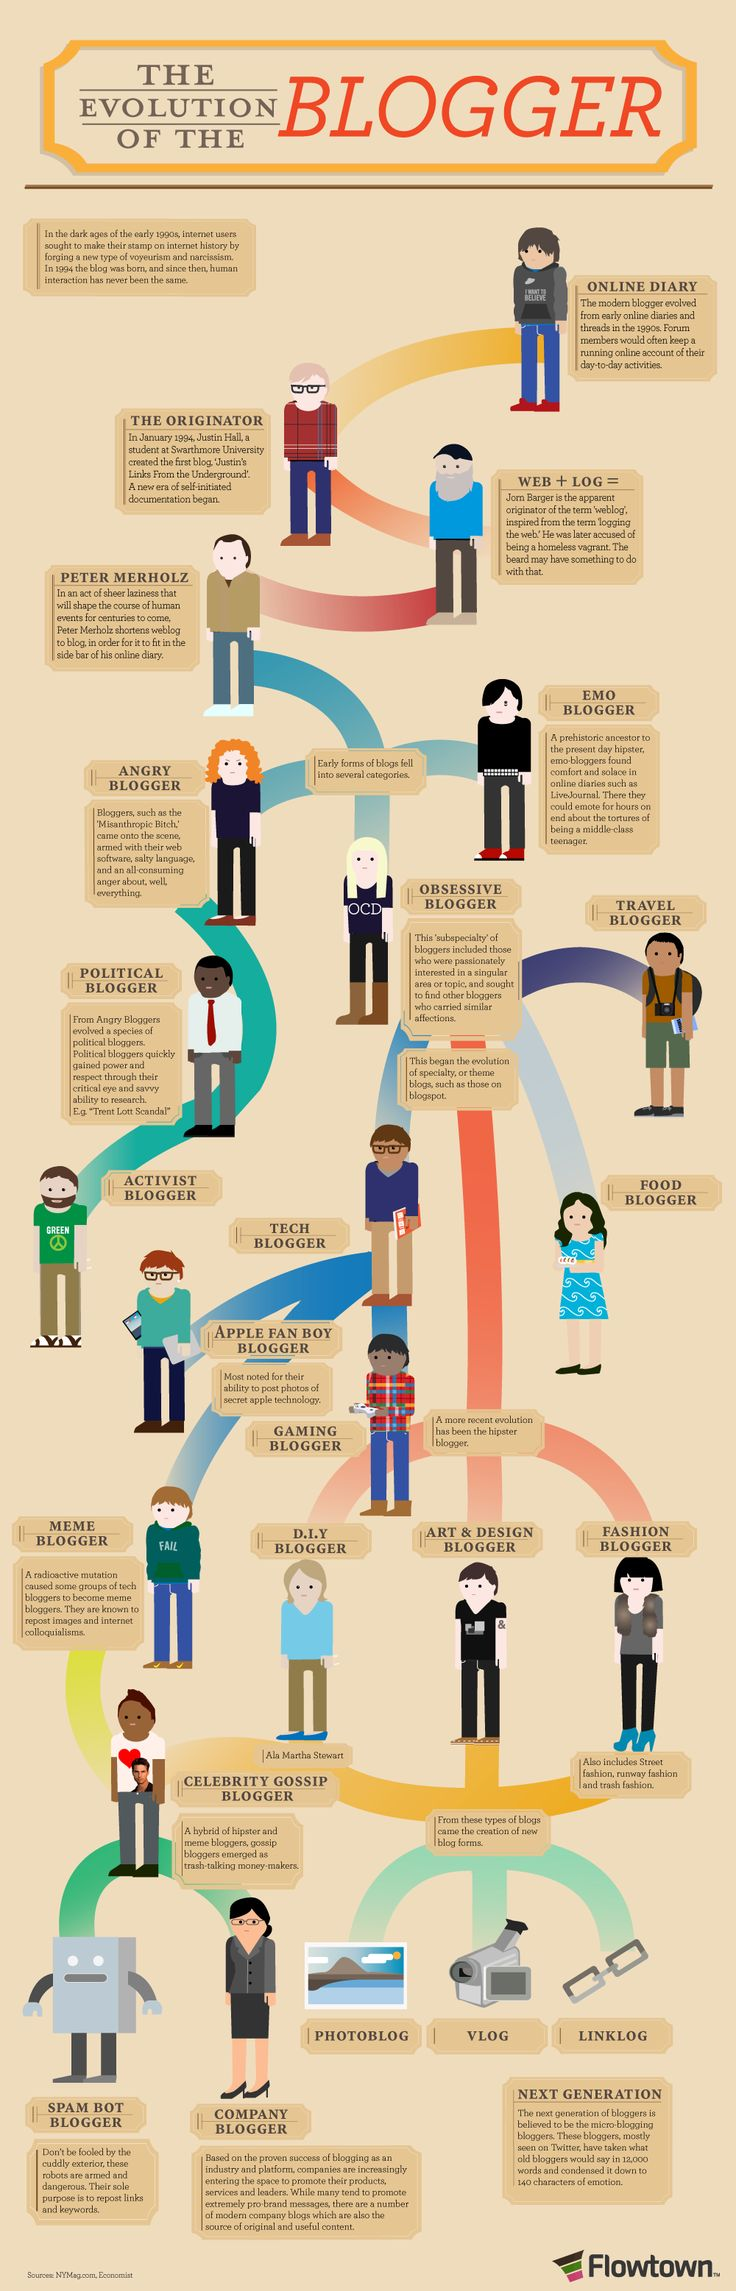 The Evolution of The Blogger. Which one are you? I wrote in forums in the late 90s and met my husband in a forum in 1998, so I guess I have been blogging longer than I realized. :)